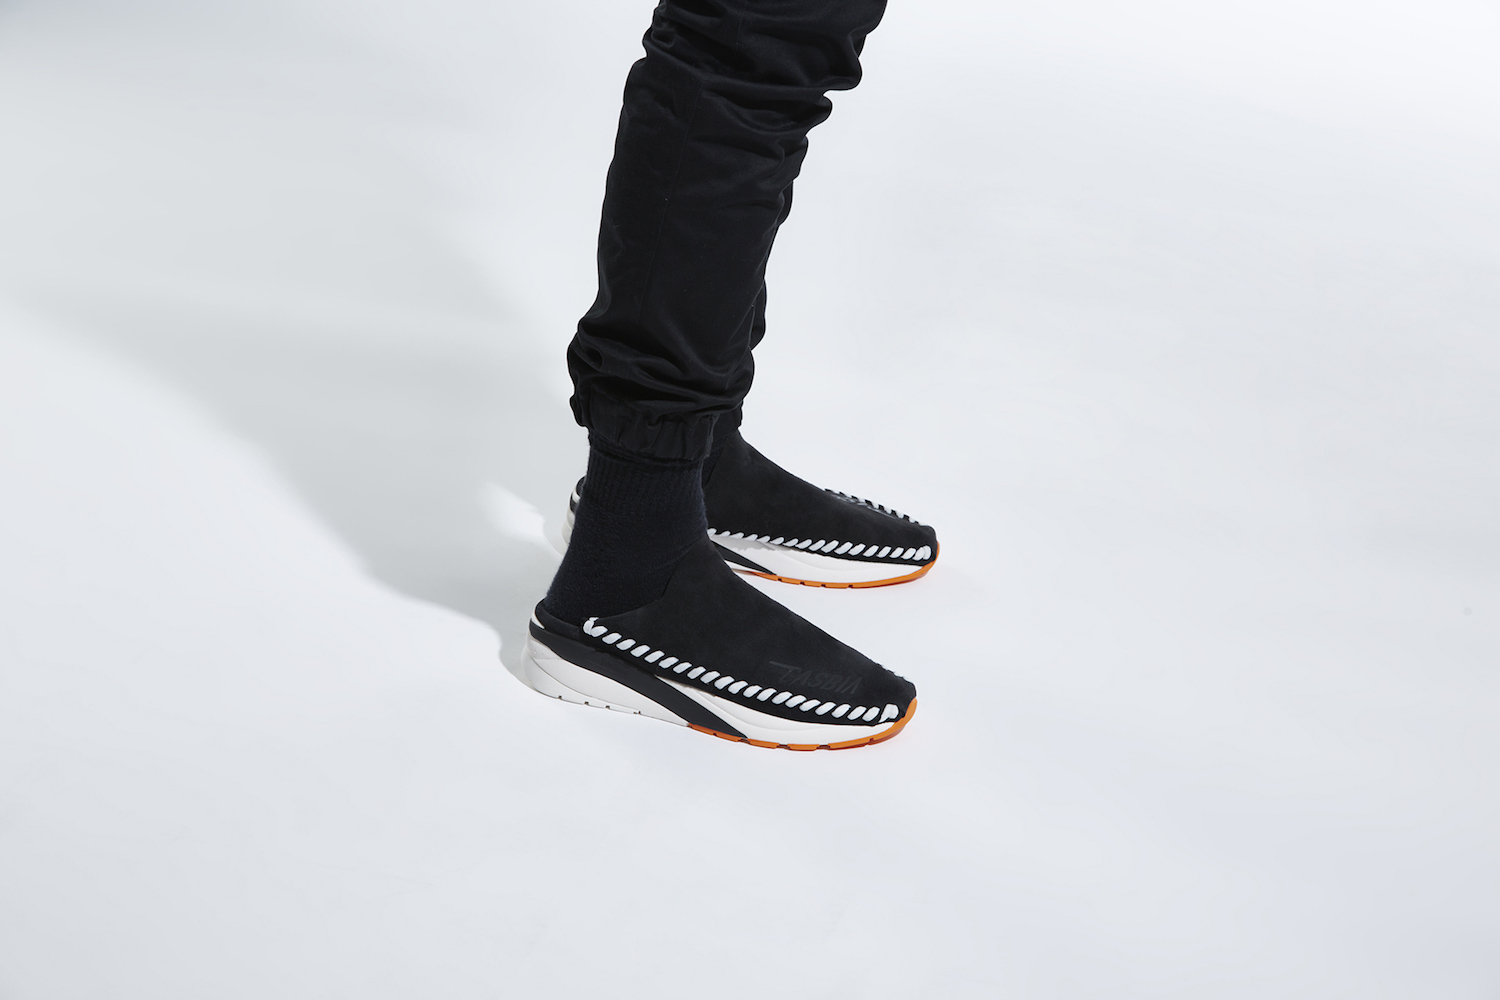 e2a207bcab Casbia's SS19 Hammerhead Slip-On Mocs & Trainers Just Dropped ...